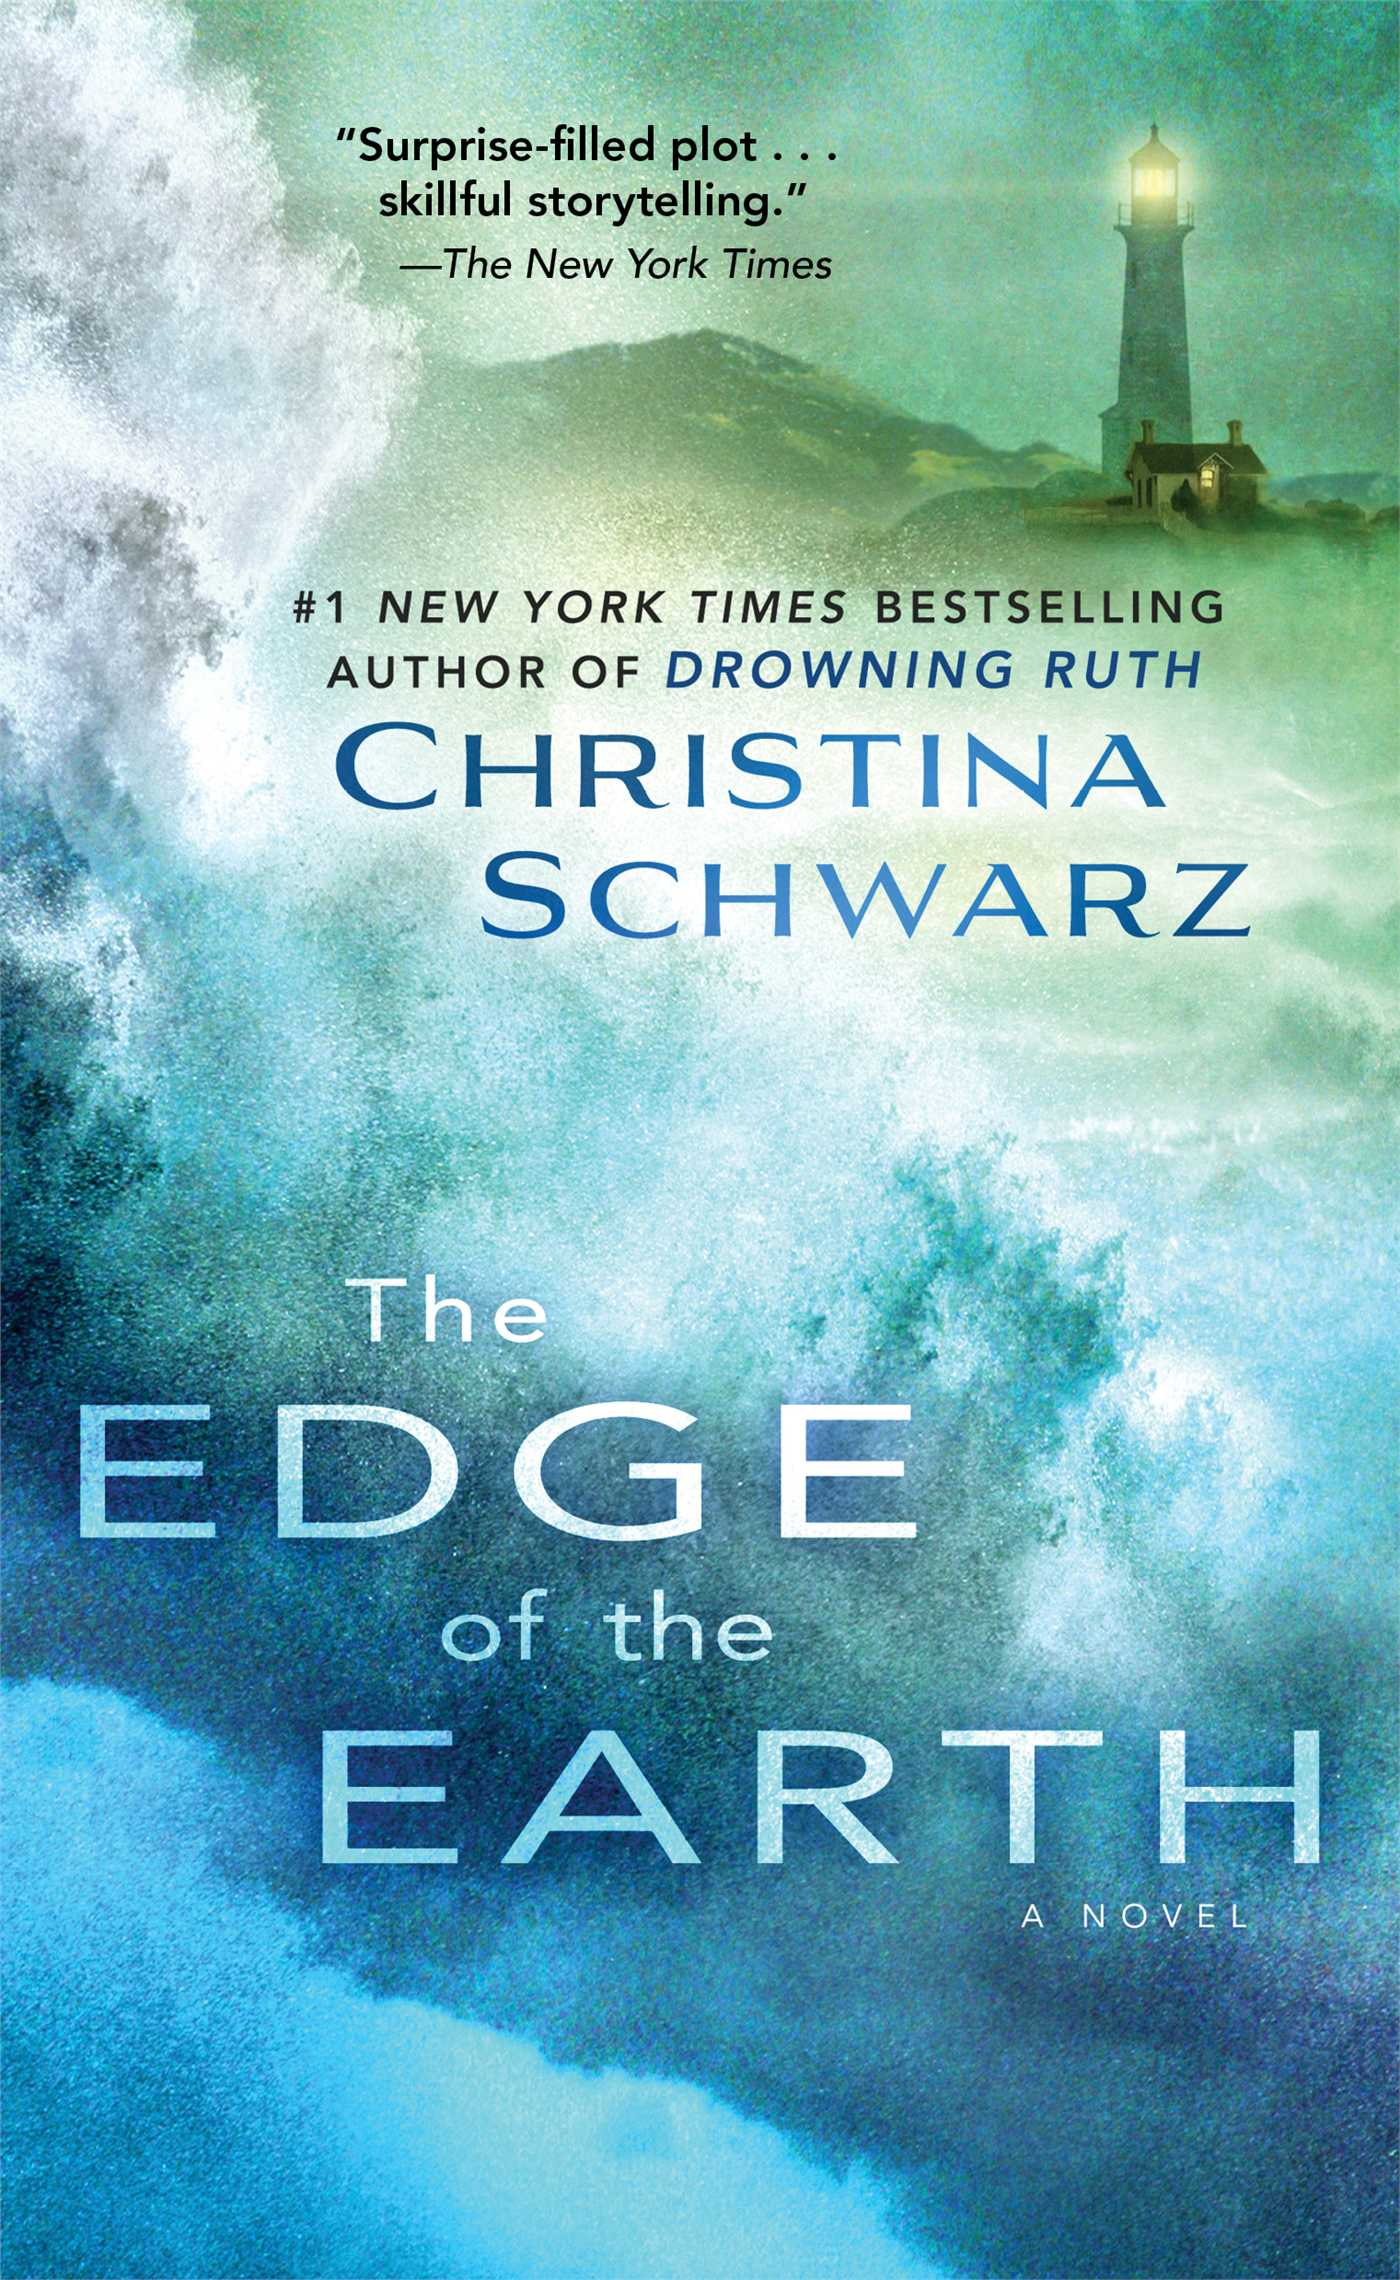 Edge-of-the-earth-9781451683721_hr